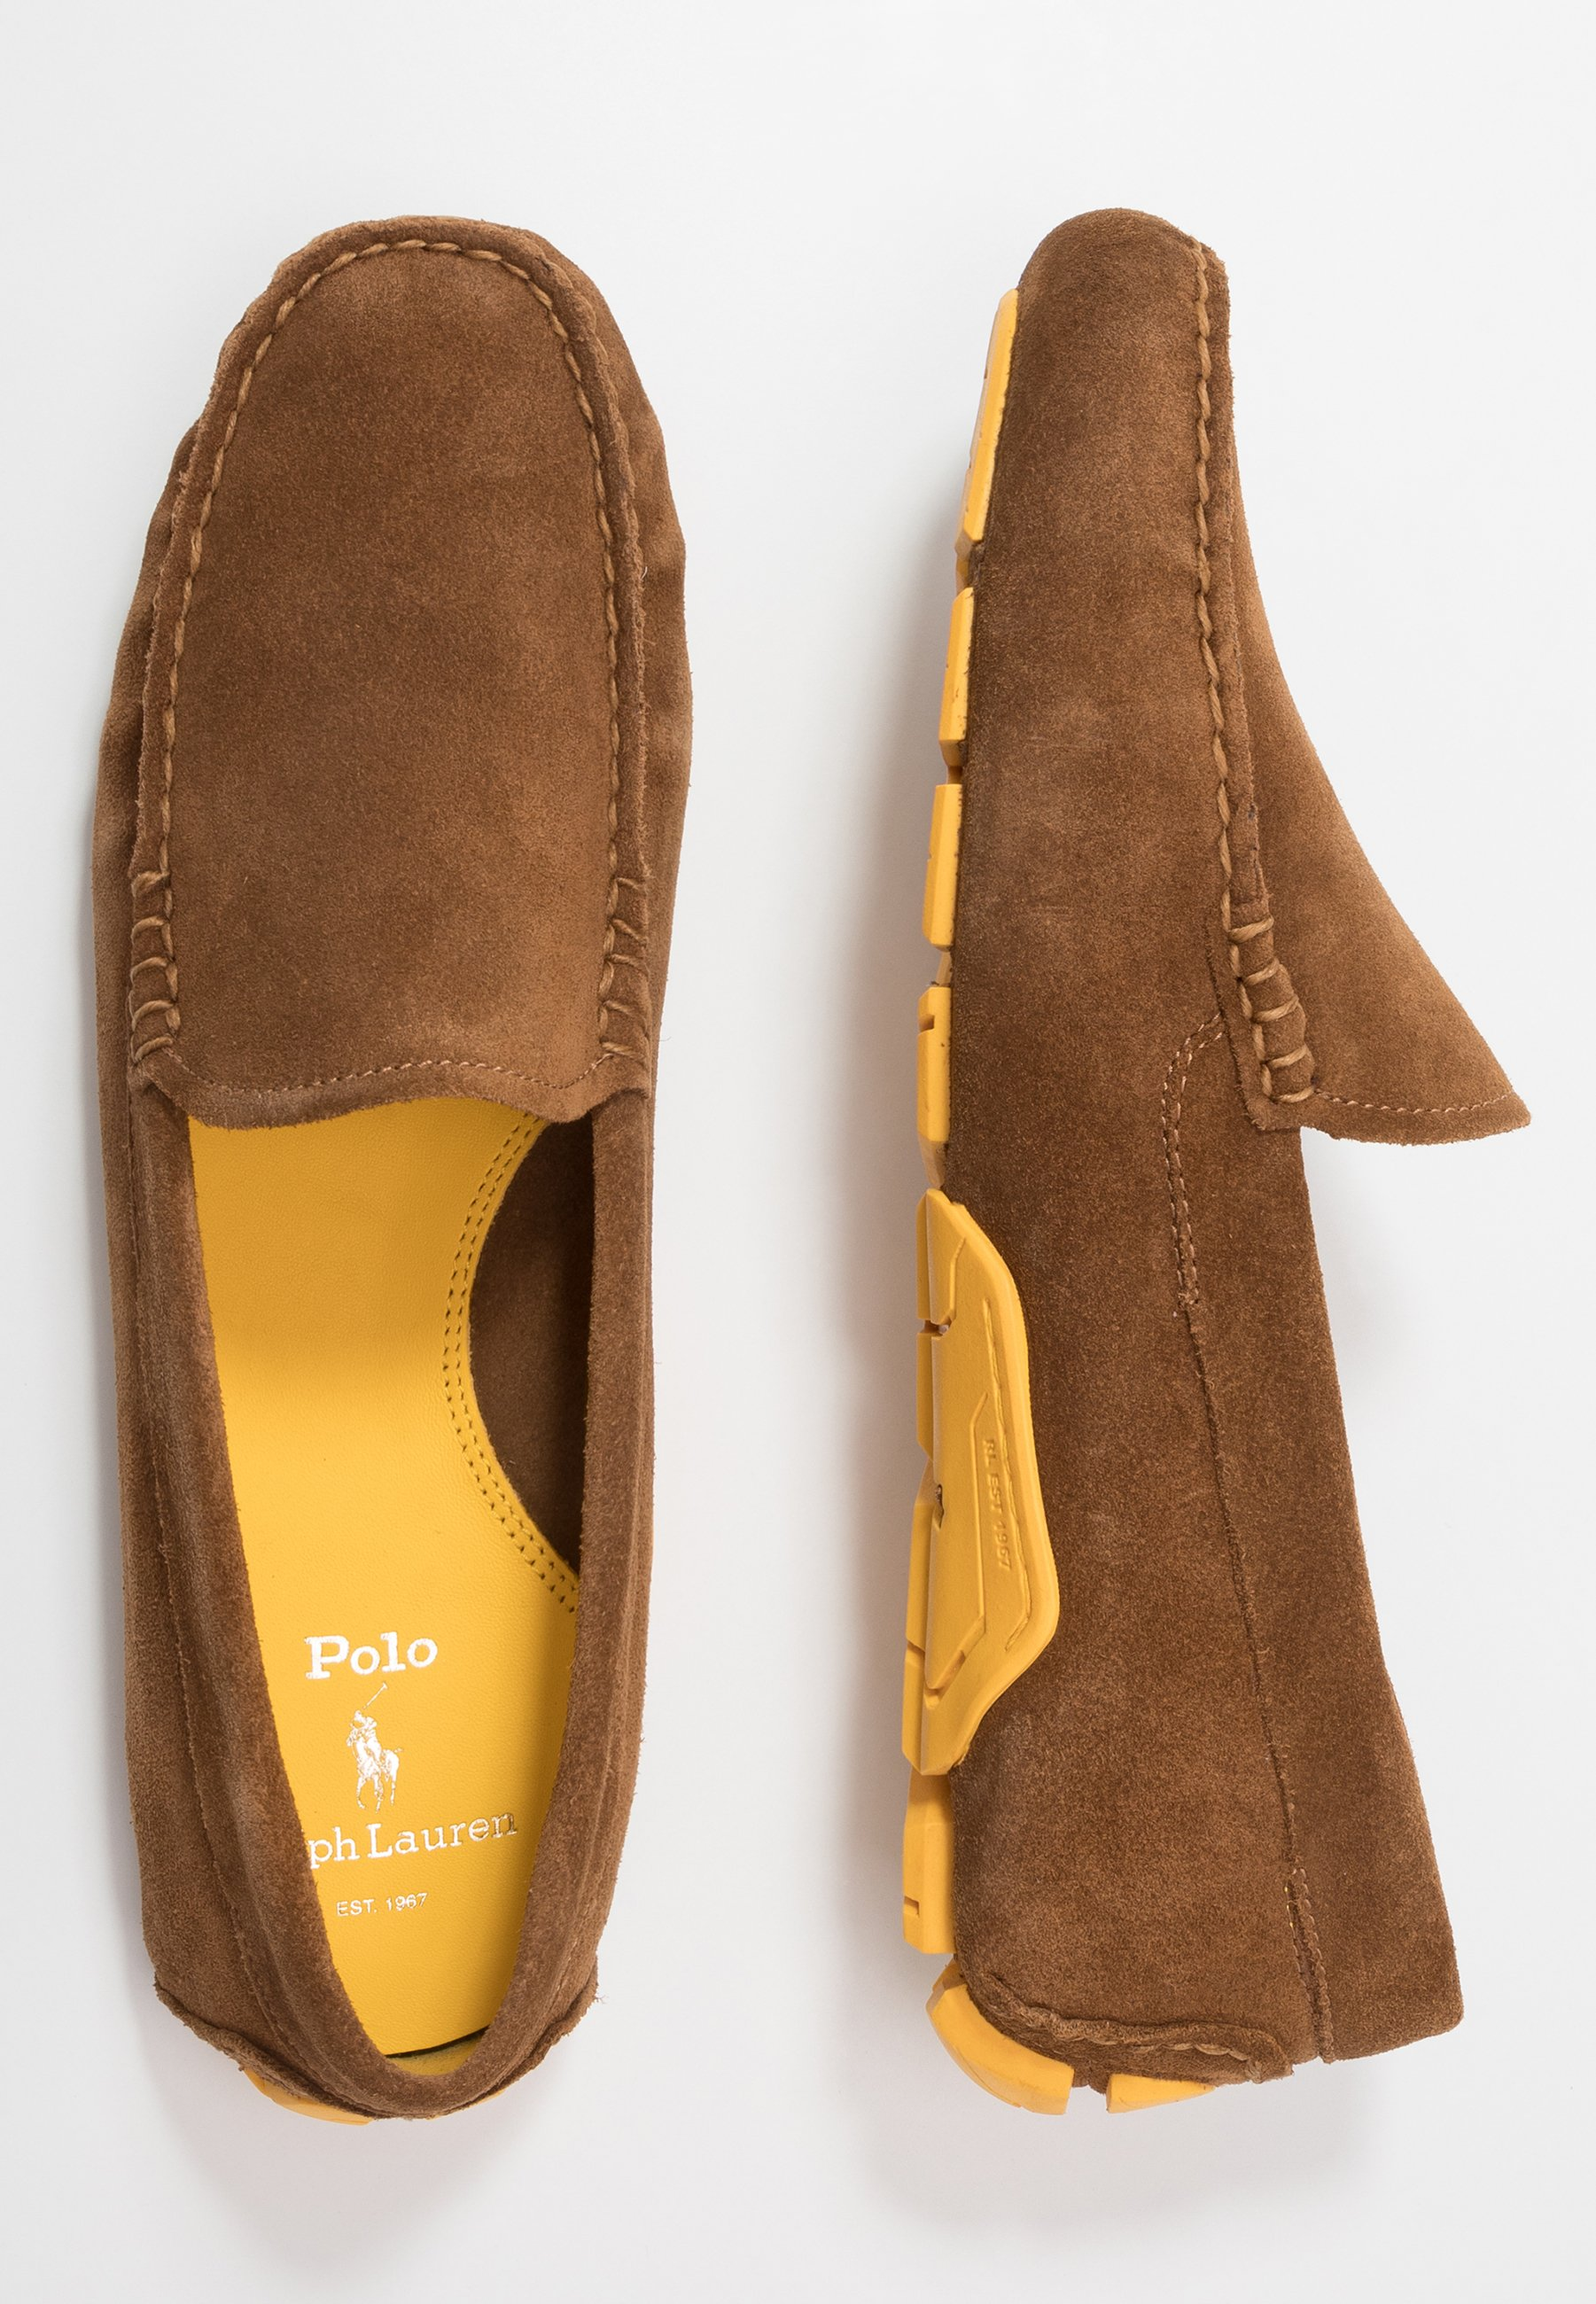 Polo Ralph Lauren Anders Driver - Moccasins Snuff